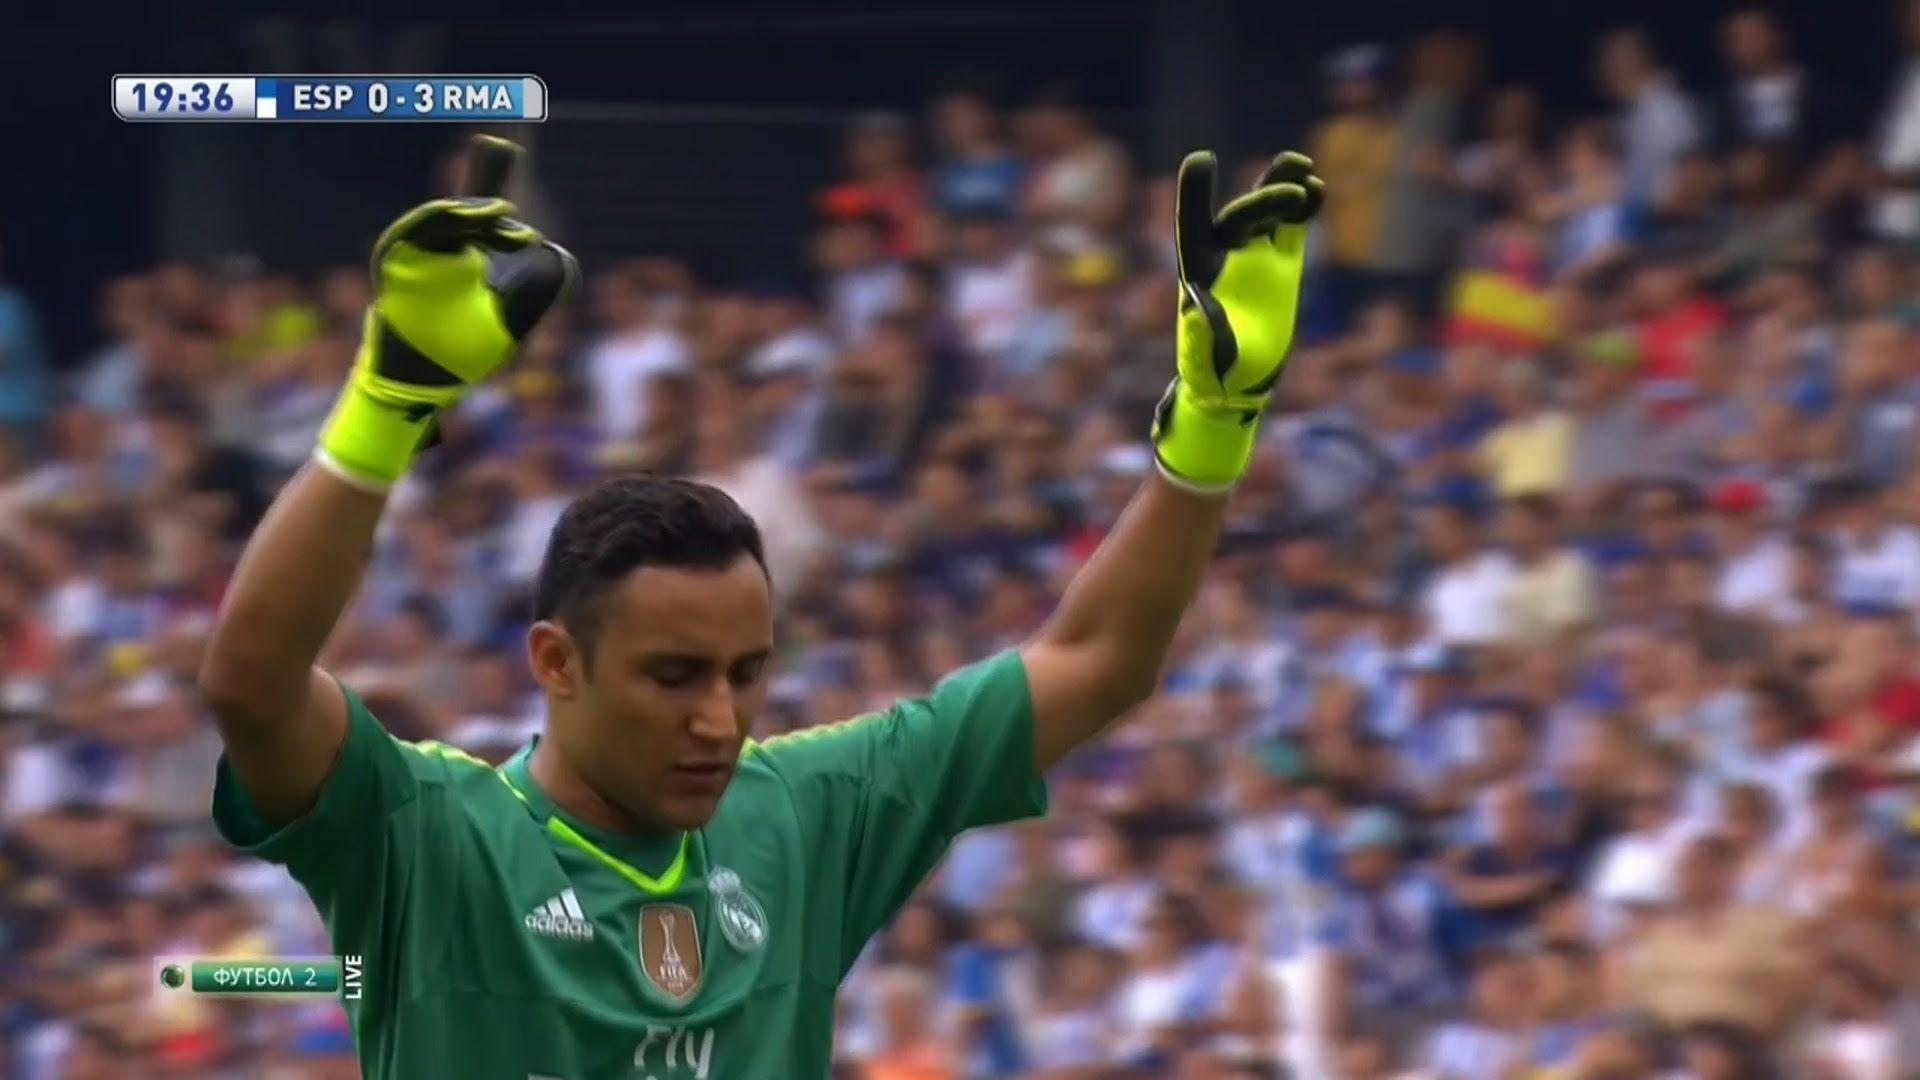 Keylor Navas Vs Espanyol (Away) 2015-16 HD 720p - YouTube